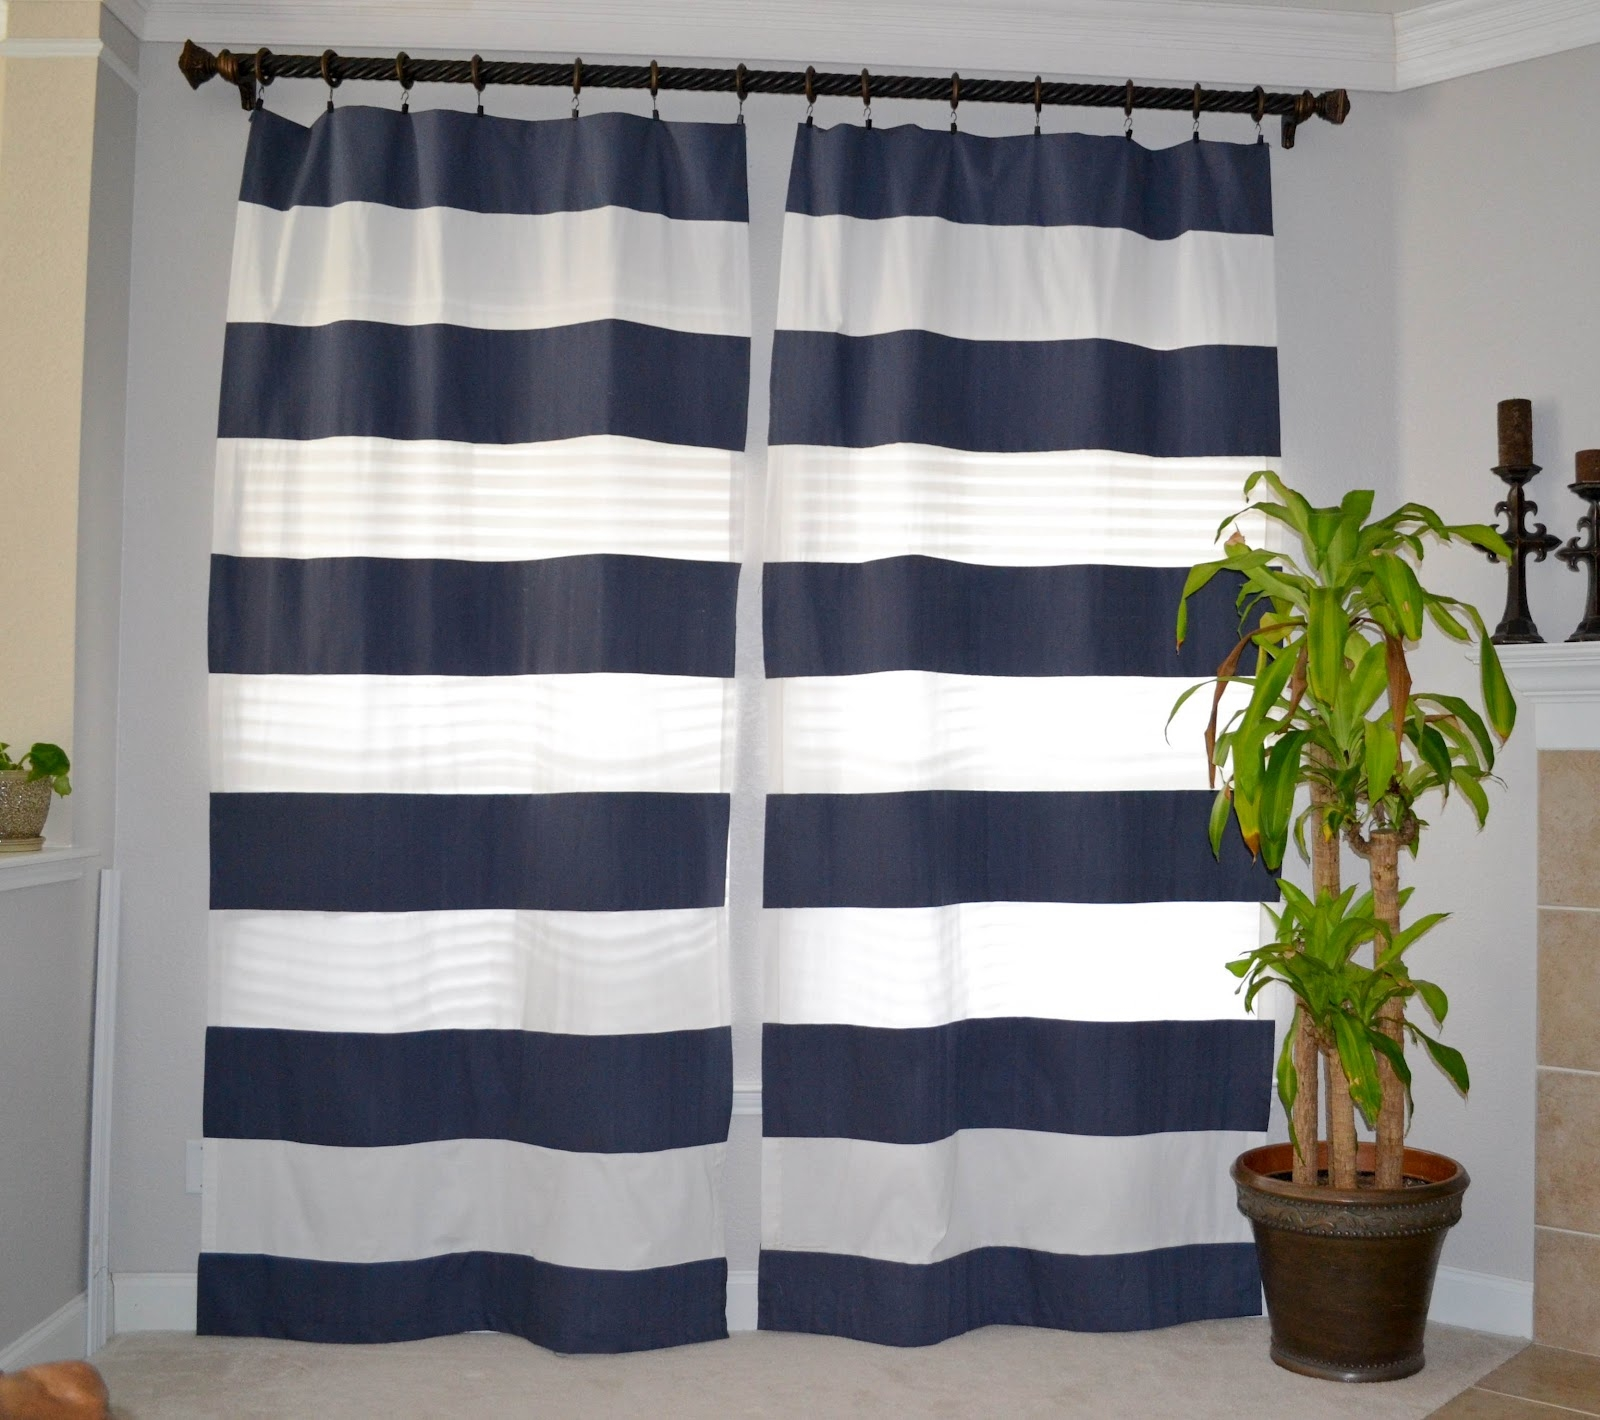 Navy And White Shower Curtain Design And Combination Design For Navy And White Curtains (Image 13 of 25)